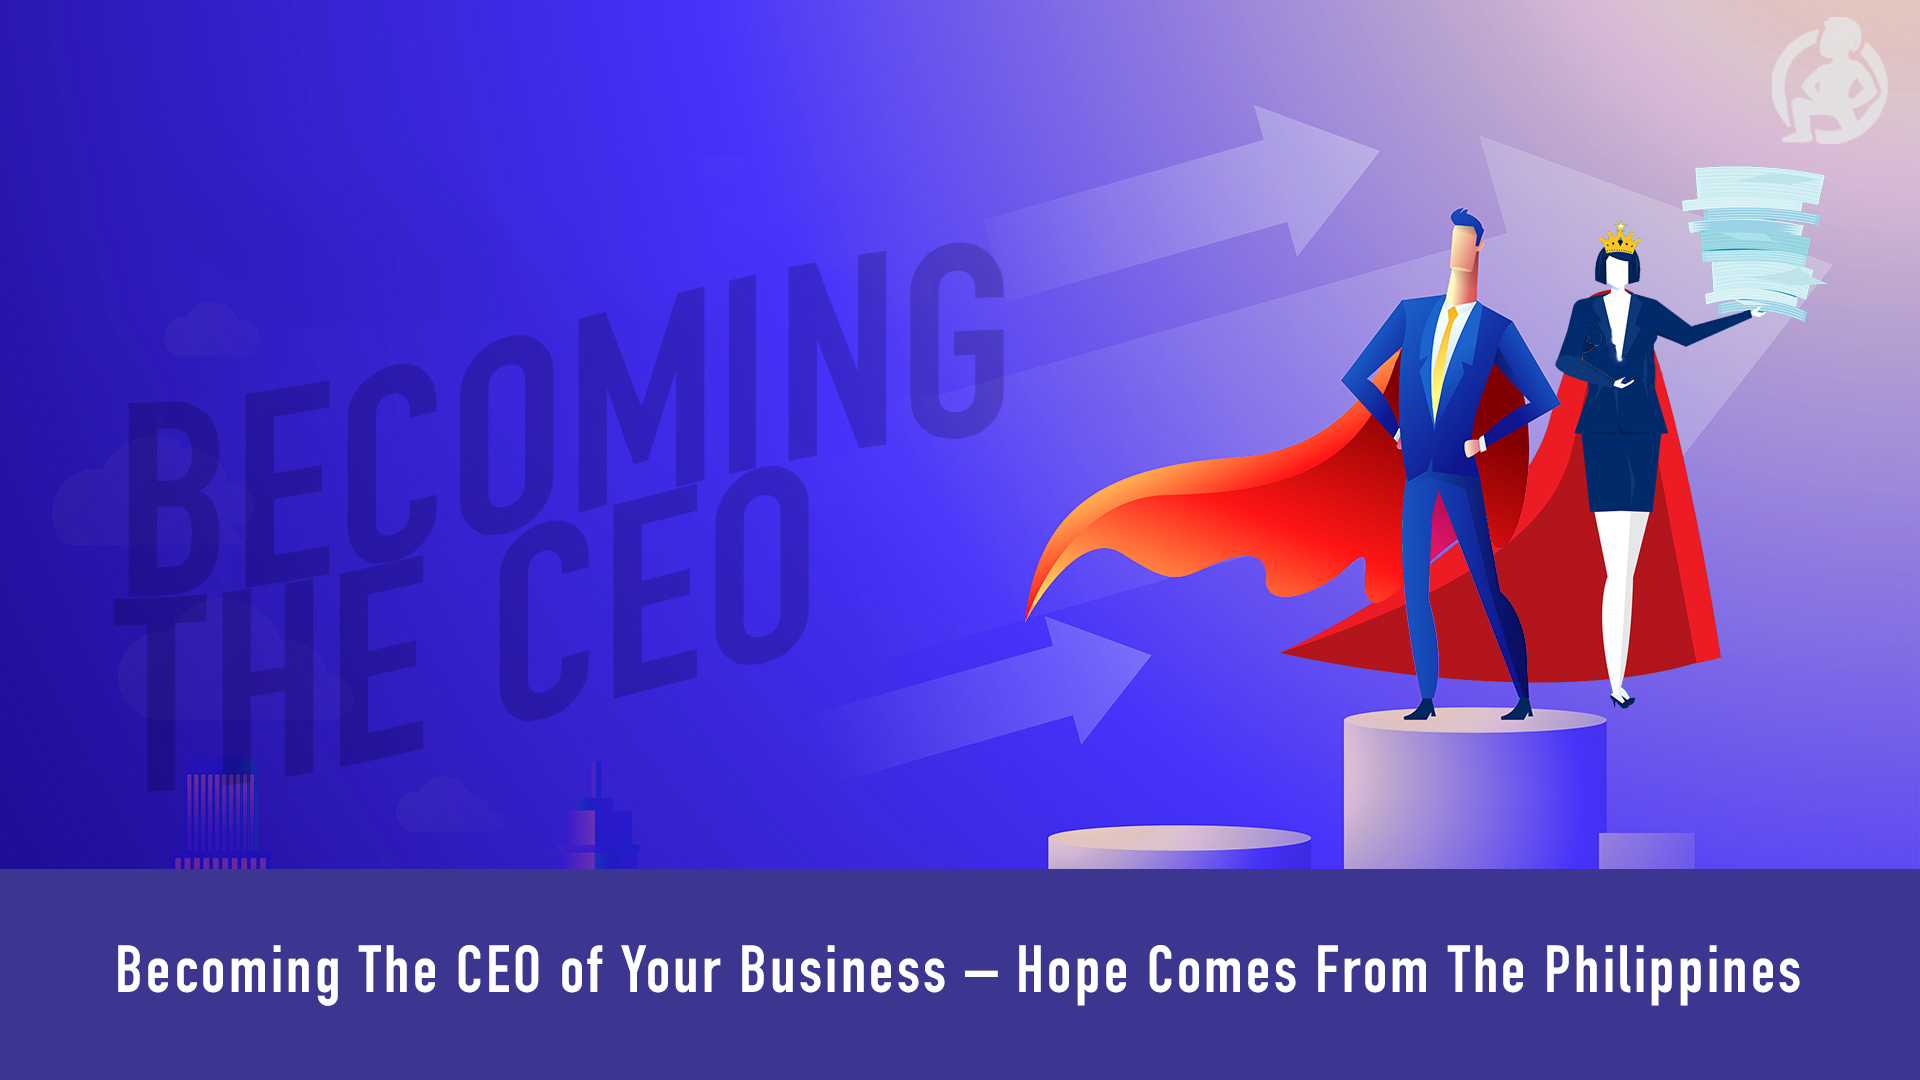 596 Becoming The CEO of Your Business – Hope Comes From The Philippines